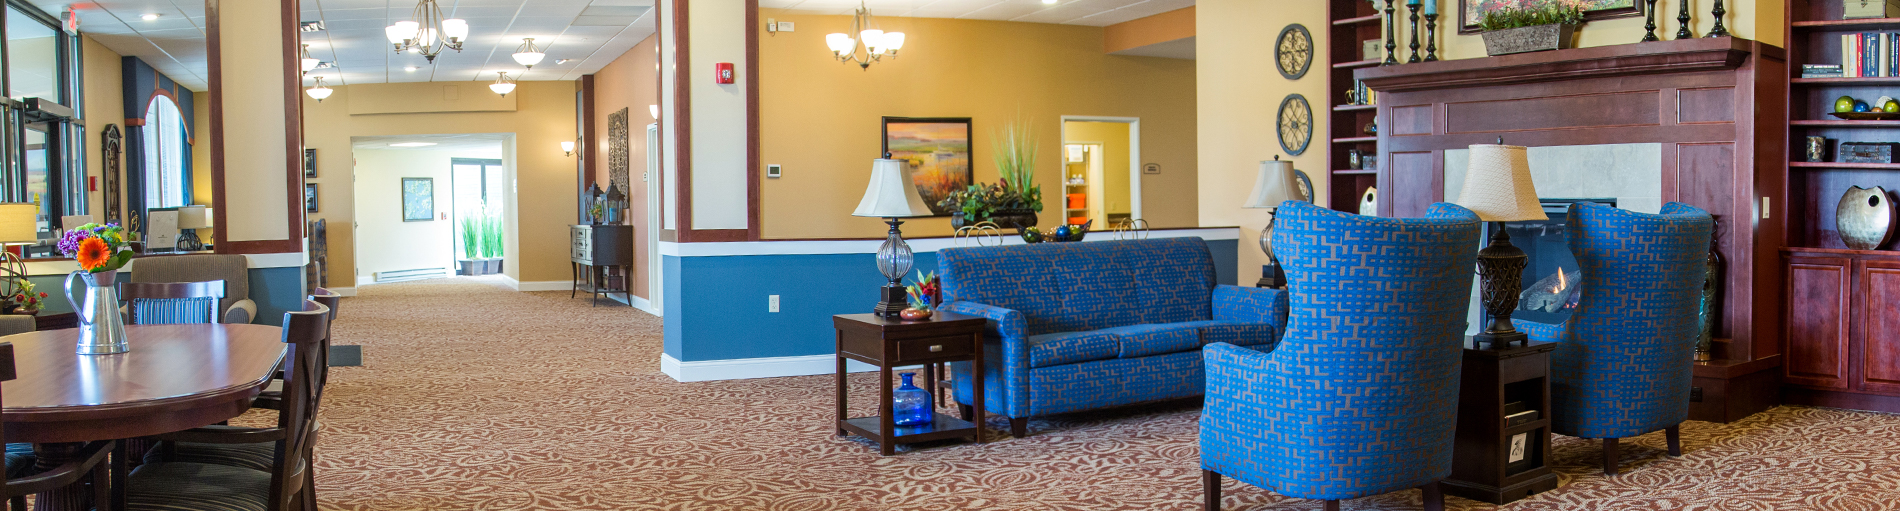 Schedule a Tour of a Senior Home in MN